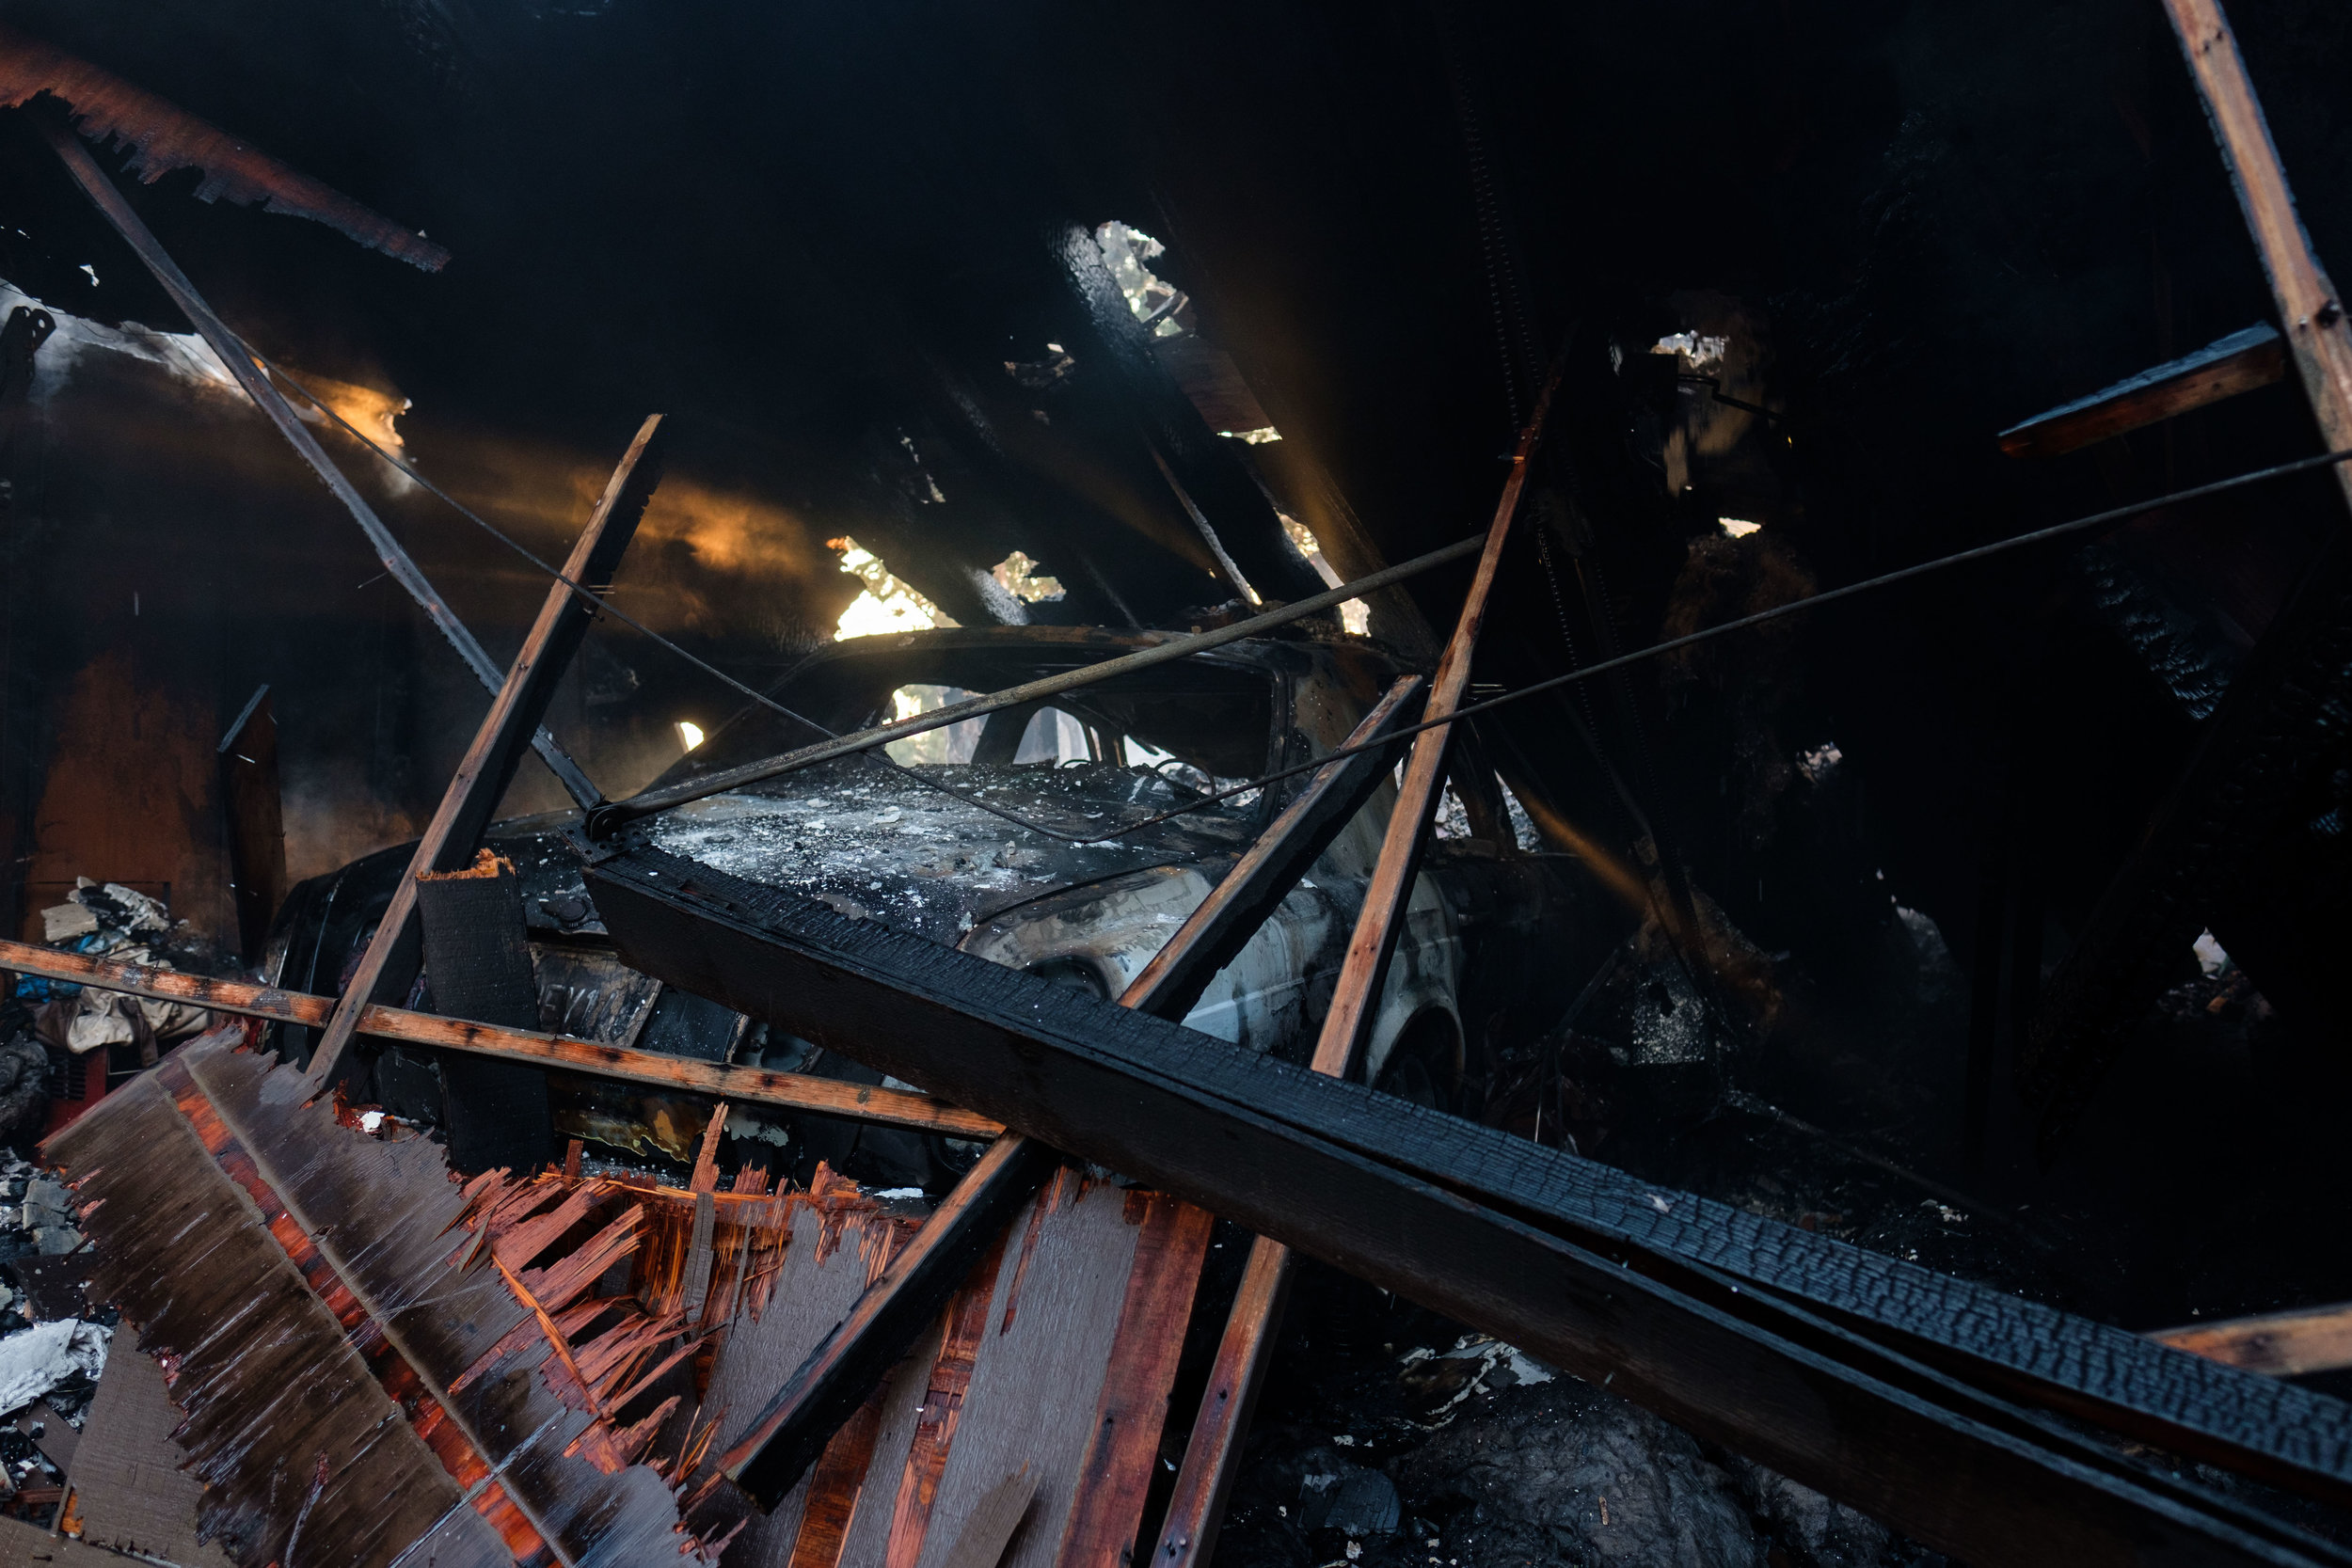 A garage collapsed on top of a Bentley, caused by the Skirball Fire in Los Angeles, Calif. On Dec. 6, 2017. (Photo by Jayrol San Jose)